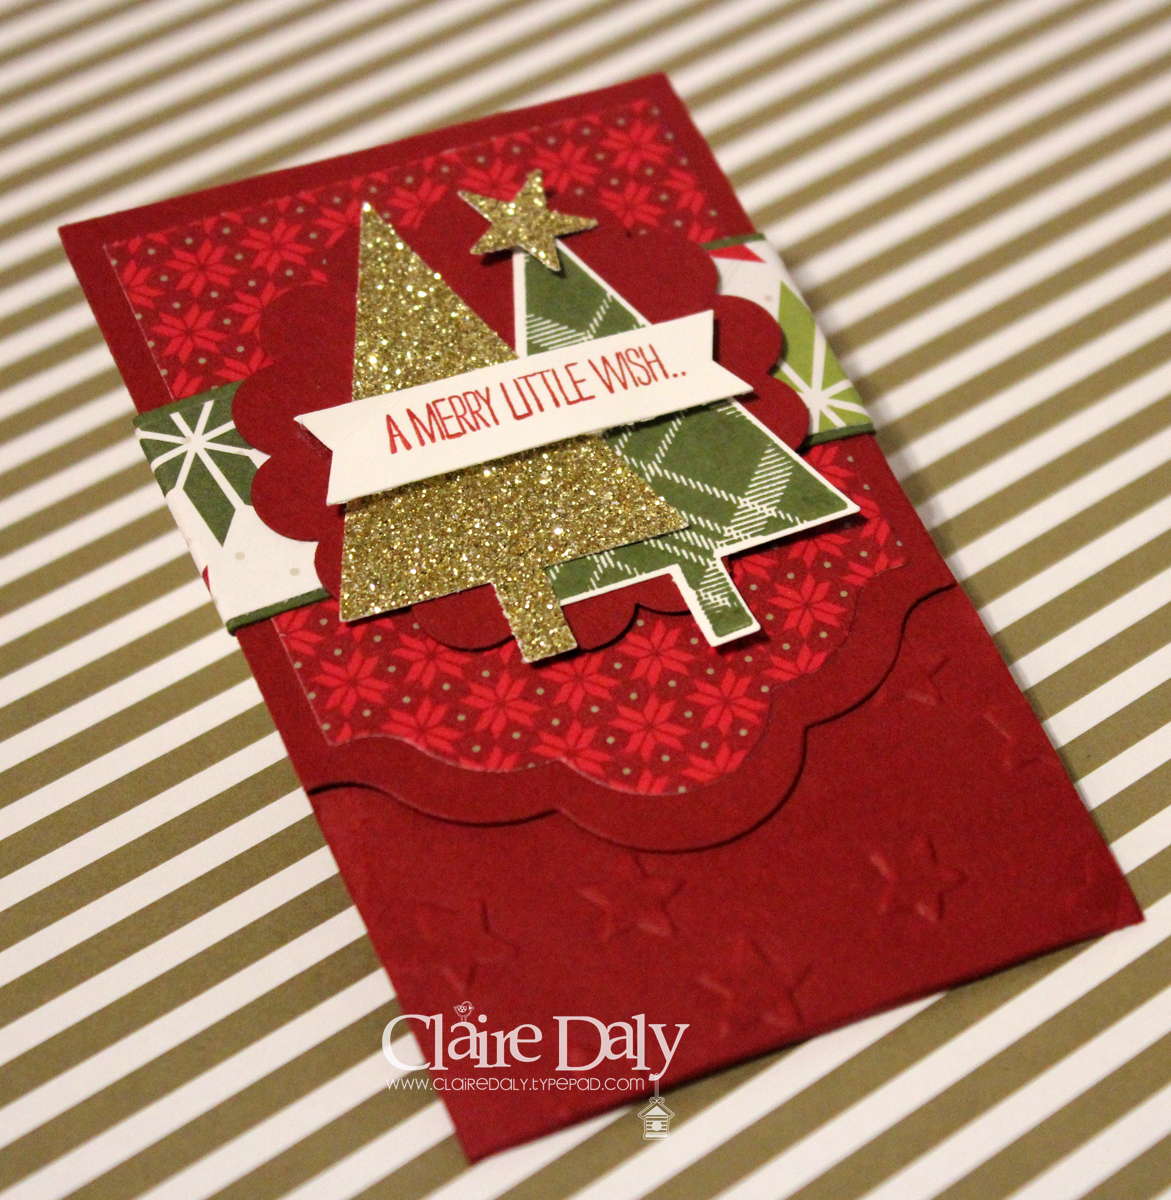 Christmas Cards And Projects Stampin Up Australia Claire Daly